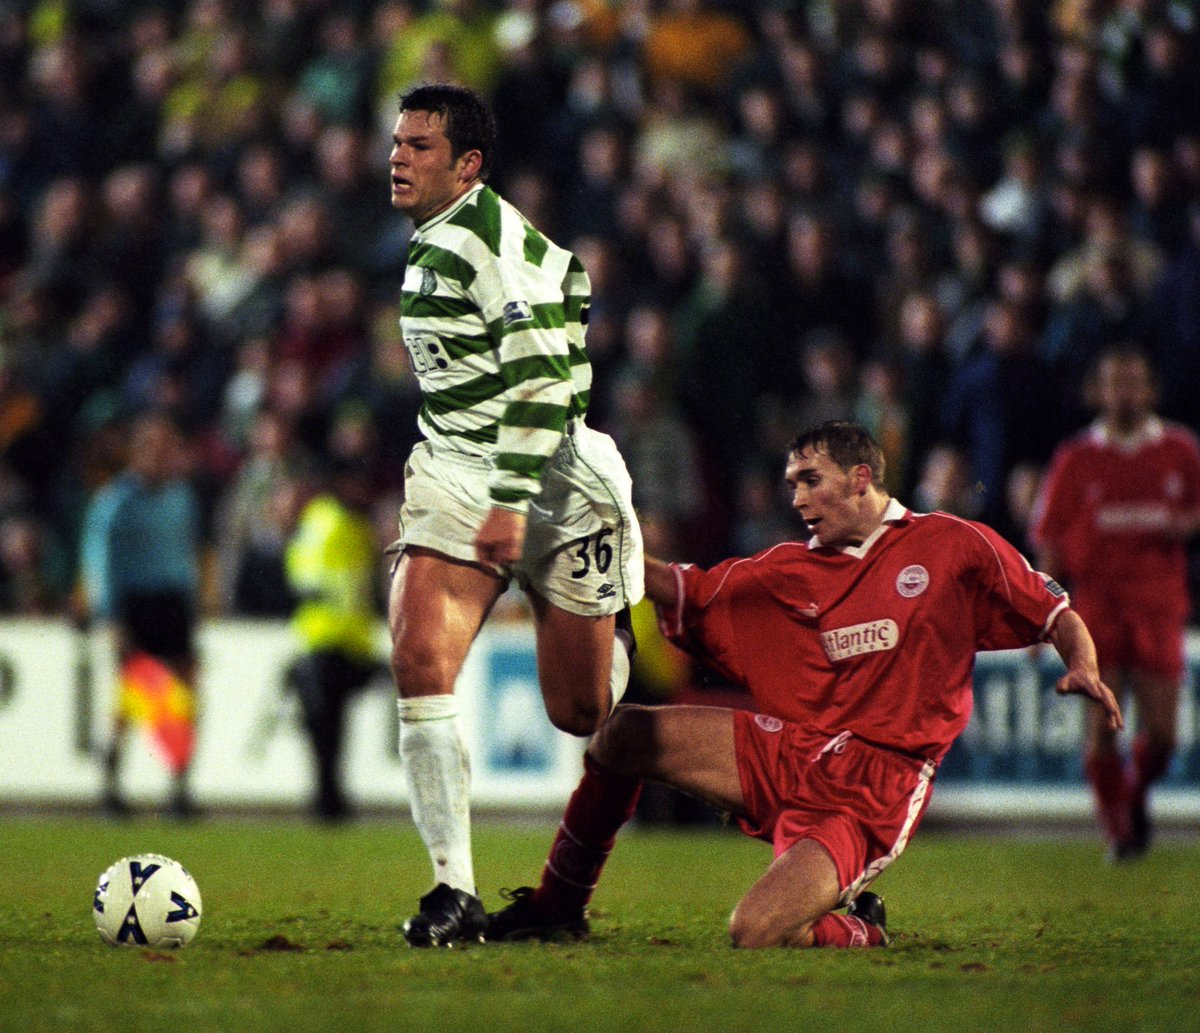 DEBUT DAYS – MARK VIDUKA